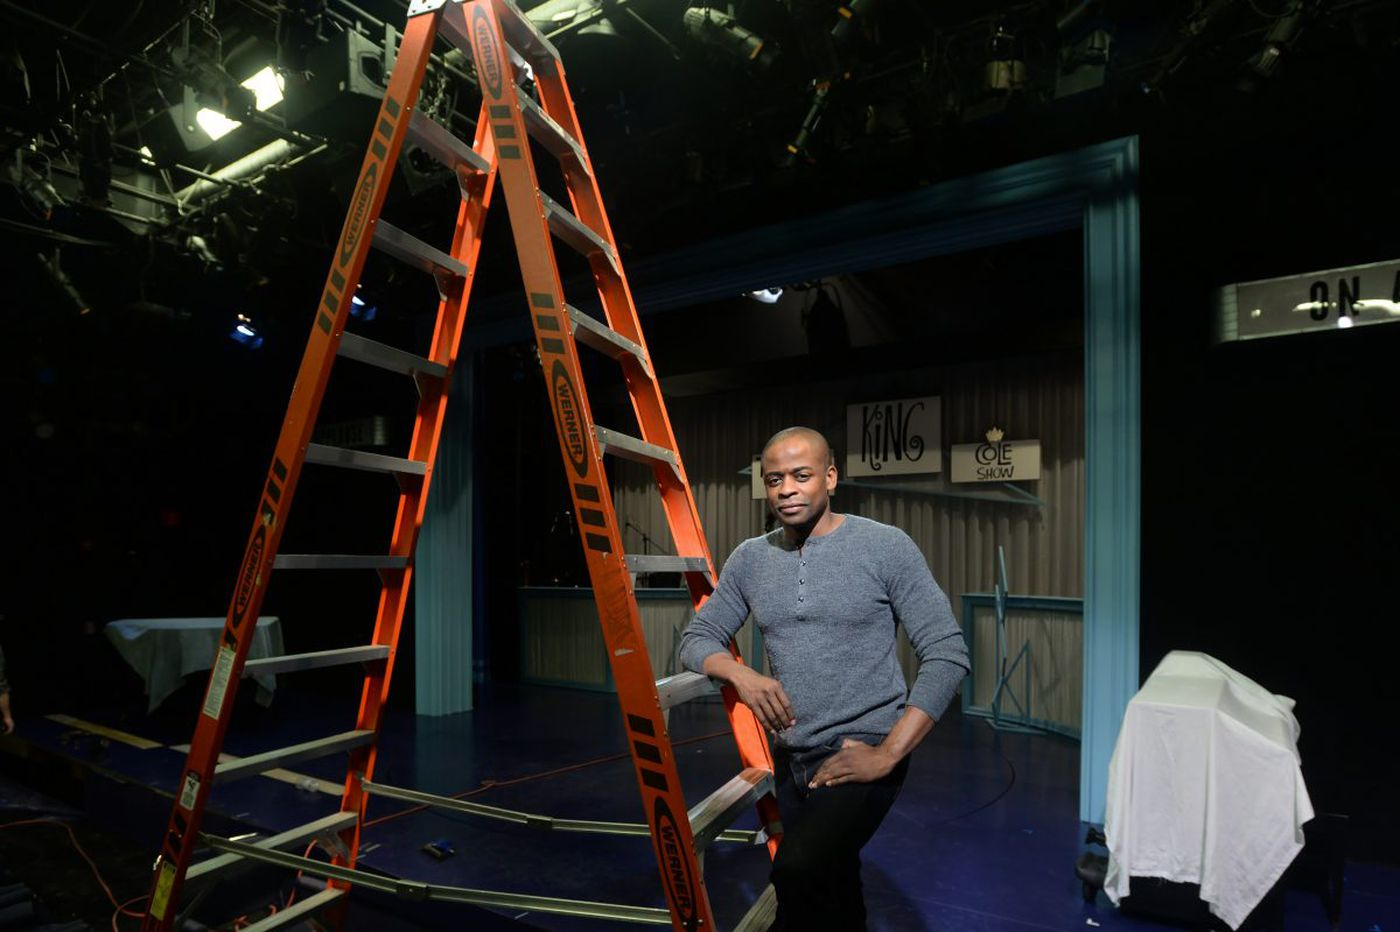 Dynamic pricing at People's Light and Kimmel? Price bumps coming to live theater near you